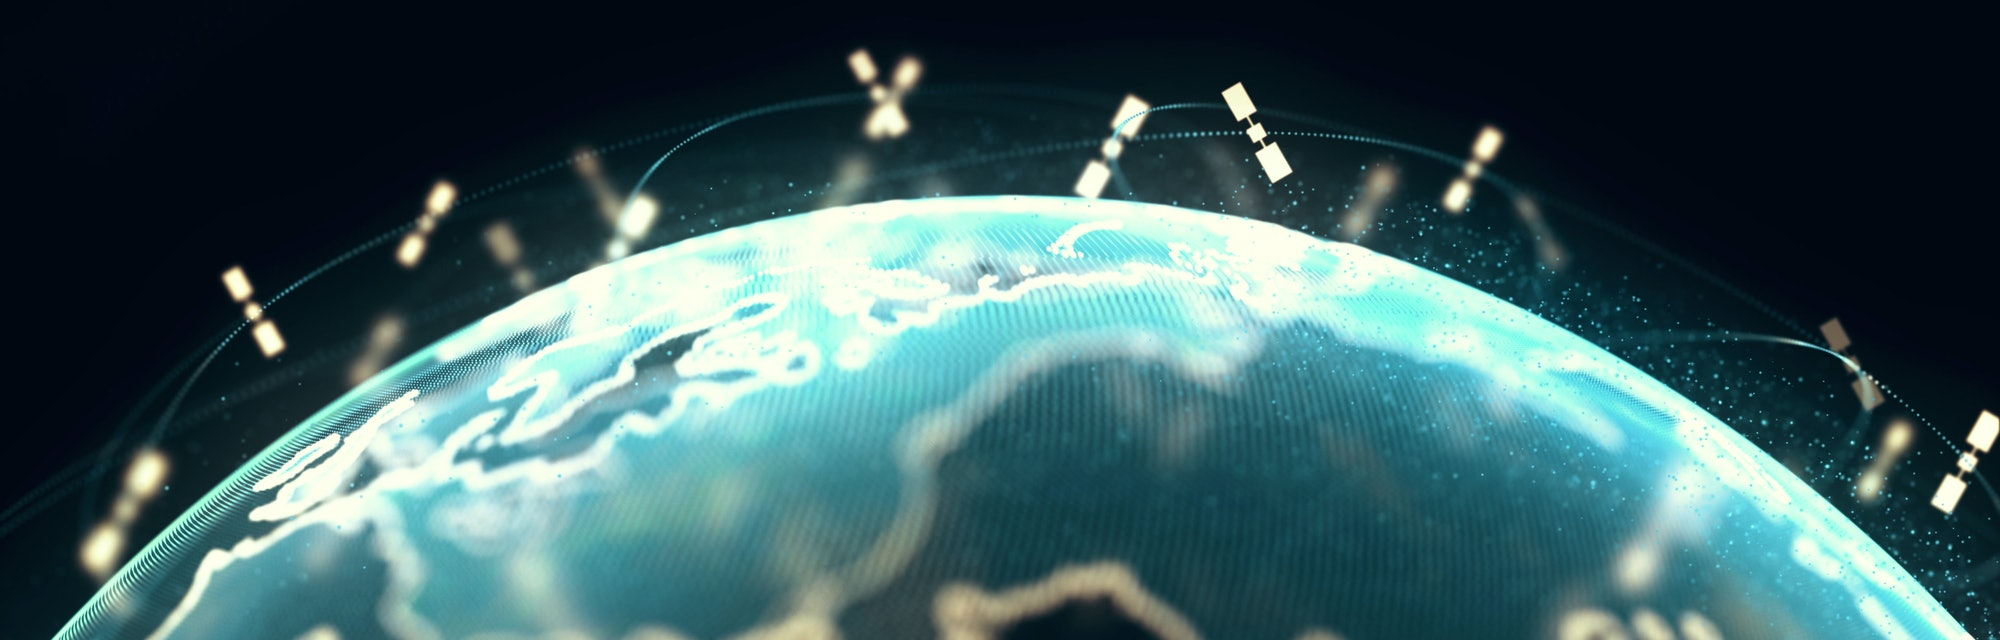 abstract 3D rendering satellites starlink network, digital earth data globe - connection the world. satellites create oneweb or skybridge surrounding planet conveying complexity big data flood the